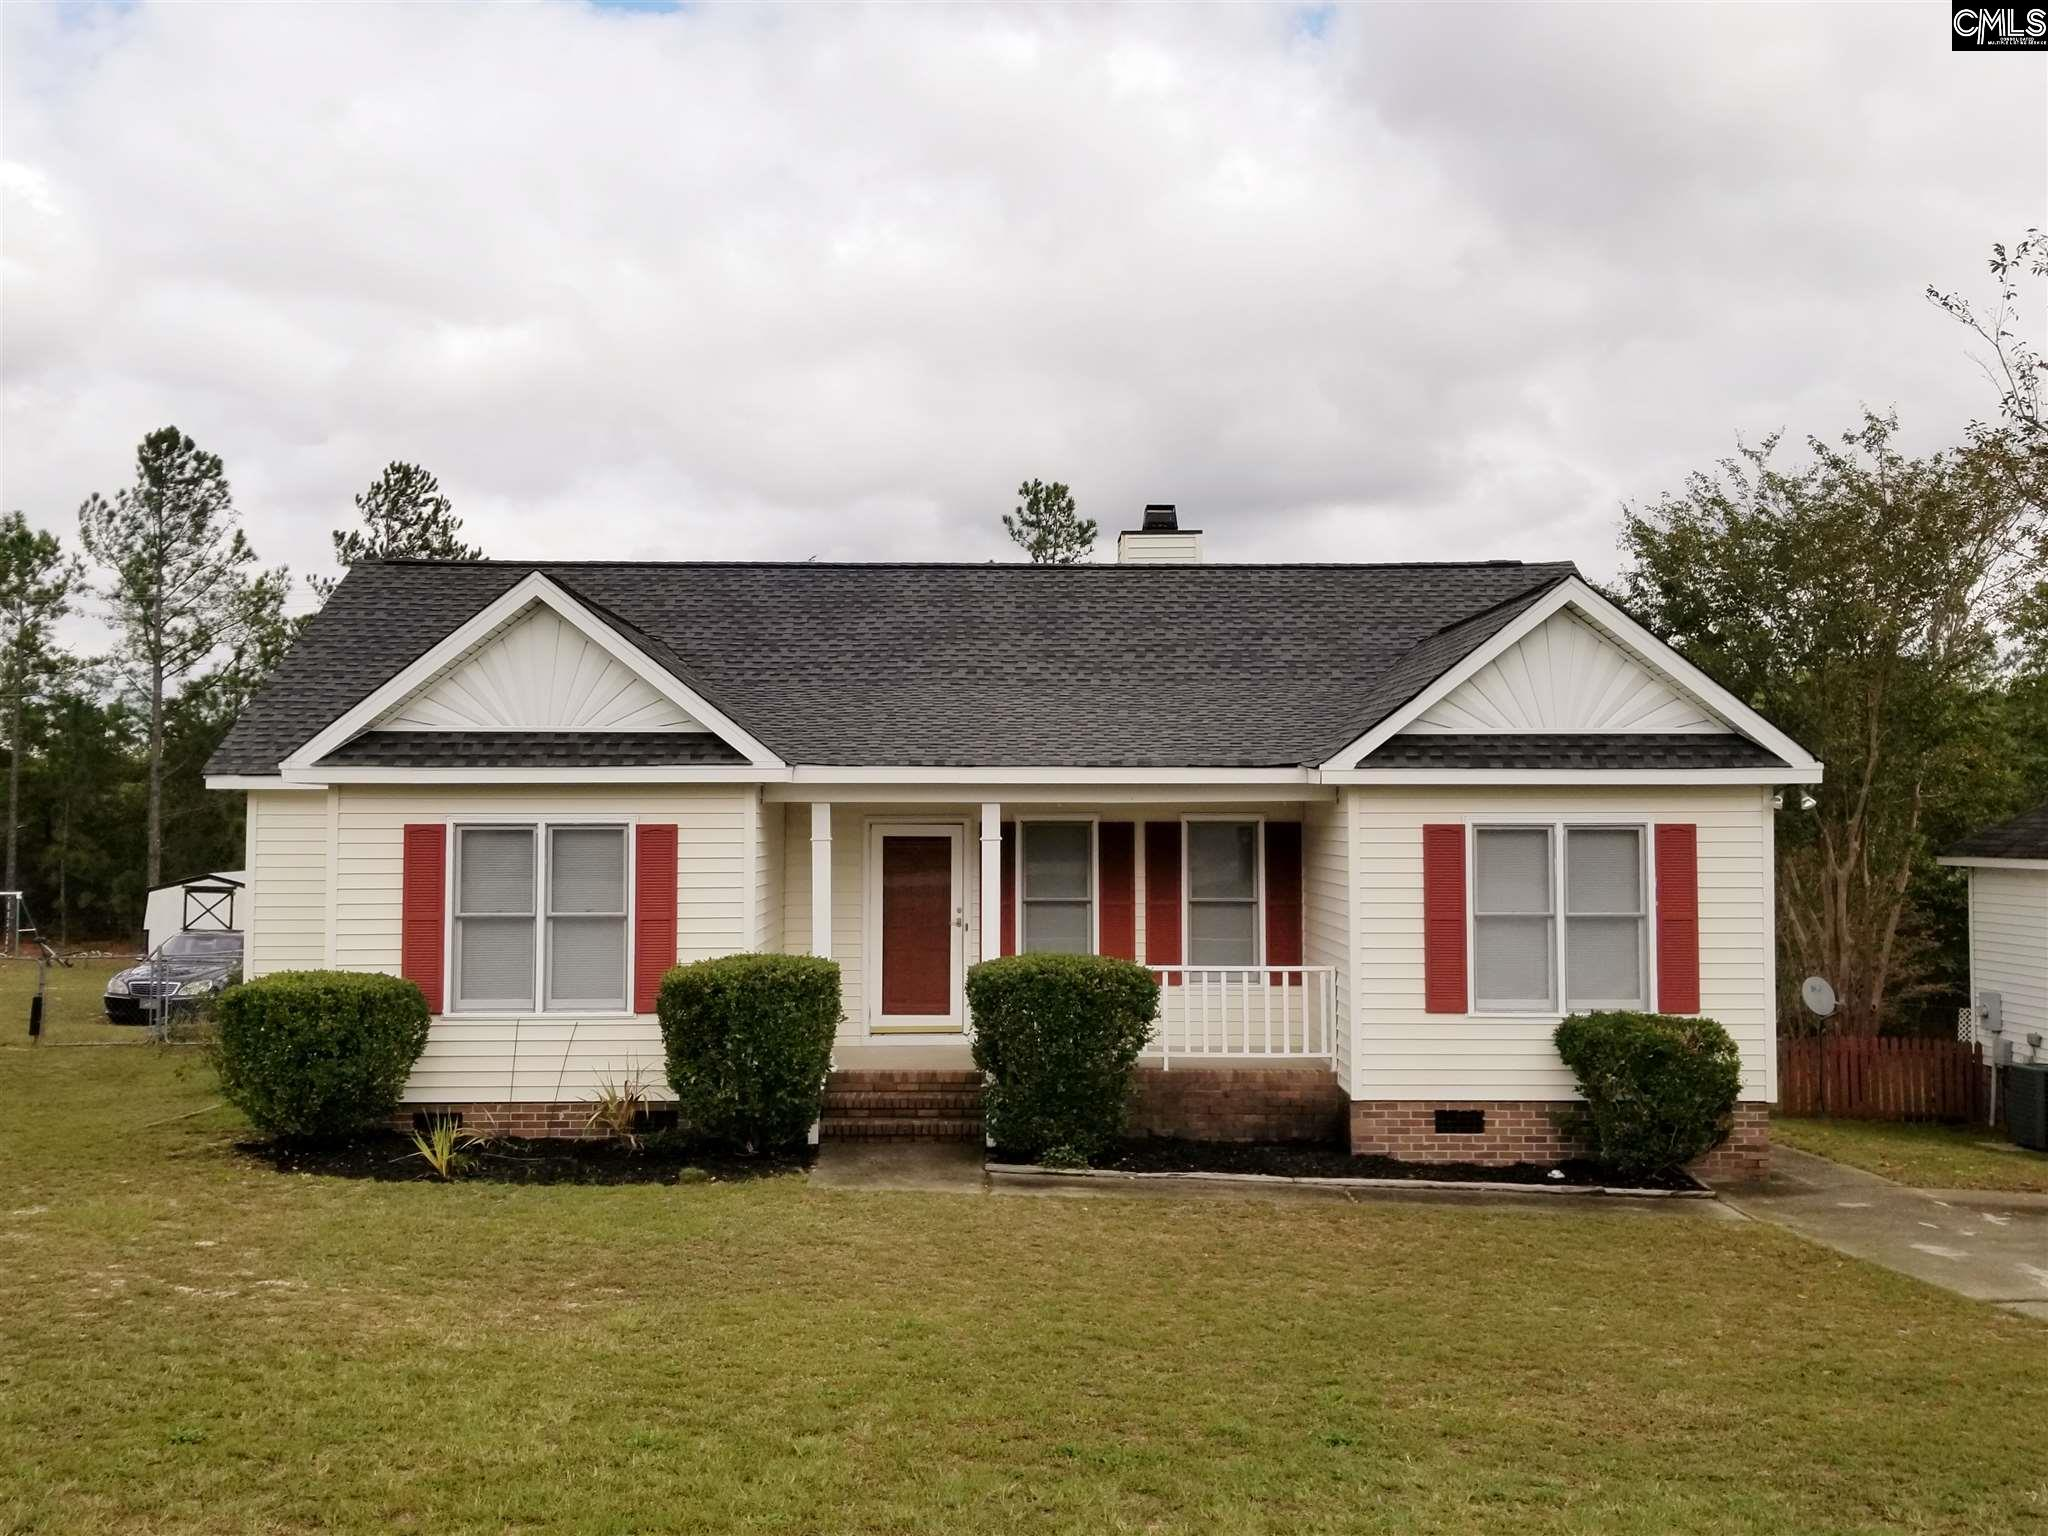 50 Camp Creek Elgin, SC 29045